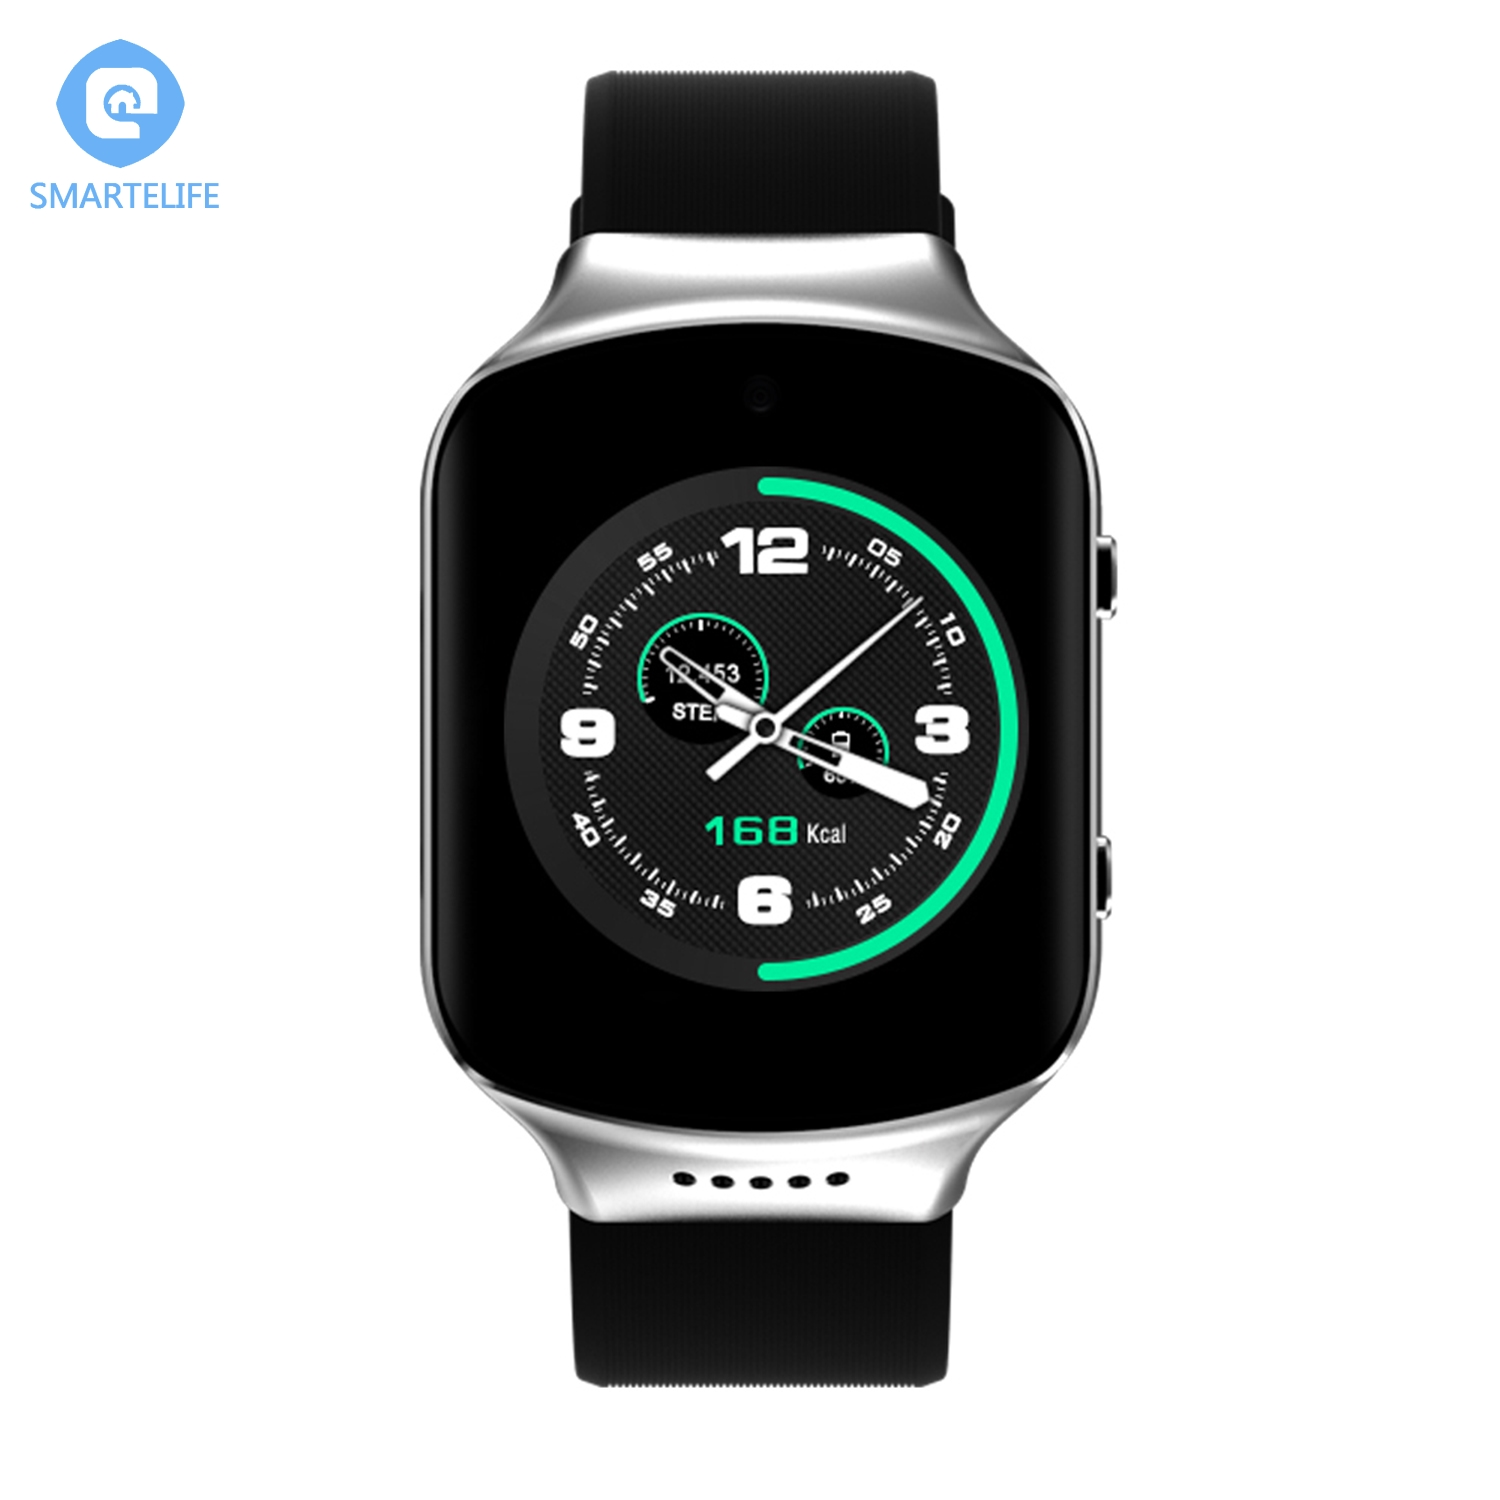 3G GPS Smart Watch Android Phone with Wifi Heart Rate Monitor Bluetooth SIM Wearable Devices Smartwatch Phone Clock for Android no 1 d5 smart watch android 4 4 3g smartwatch phone mtk6572 quad core bluetooth 4 0 wearable devices for men and women